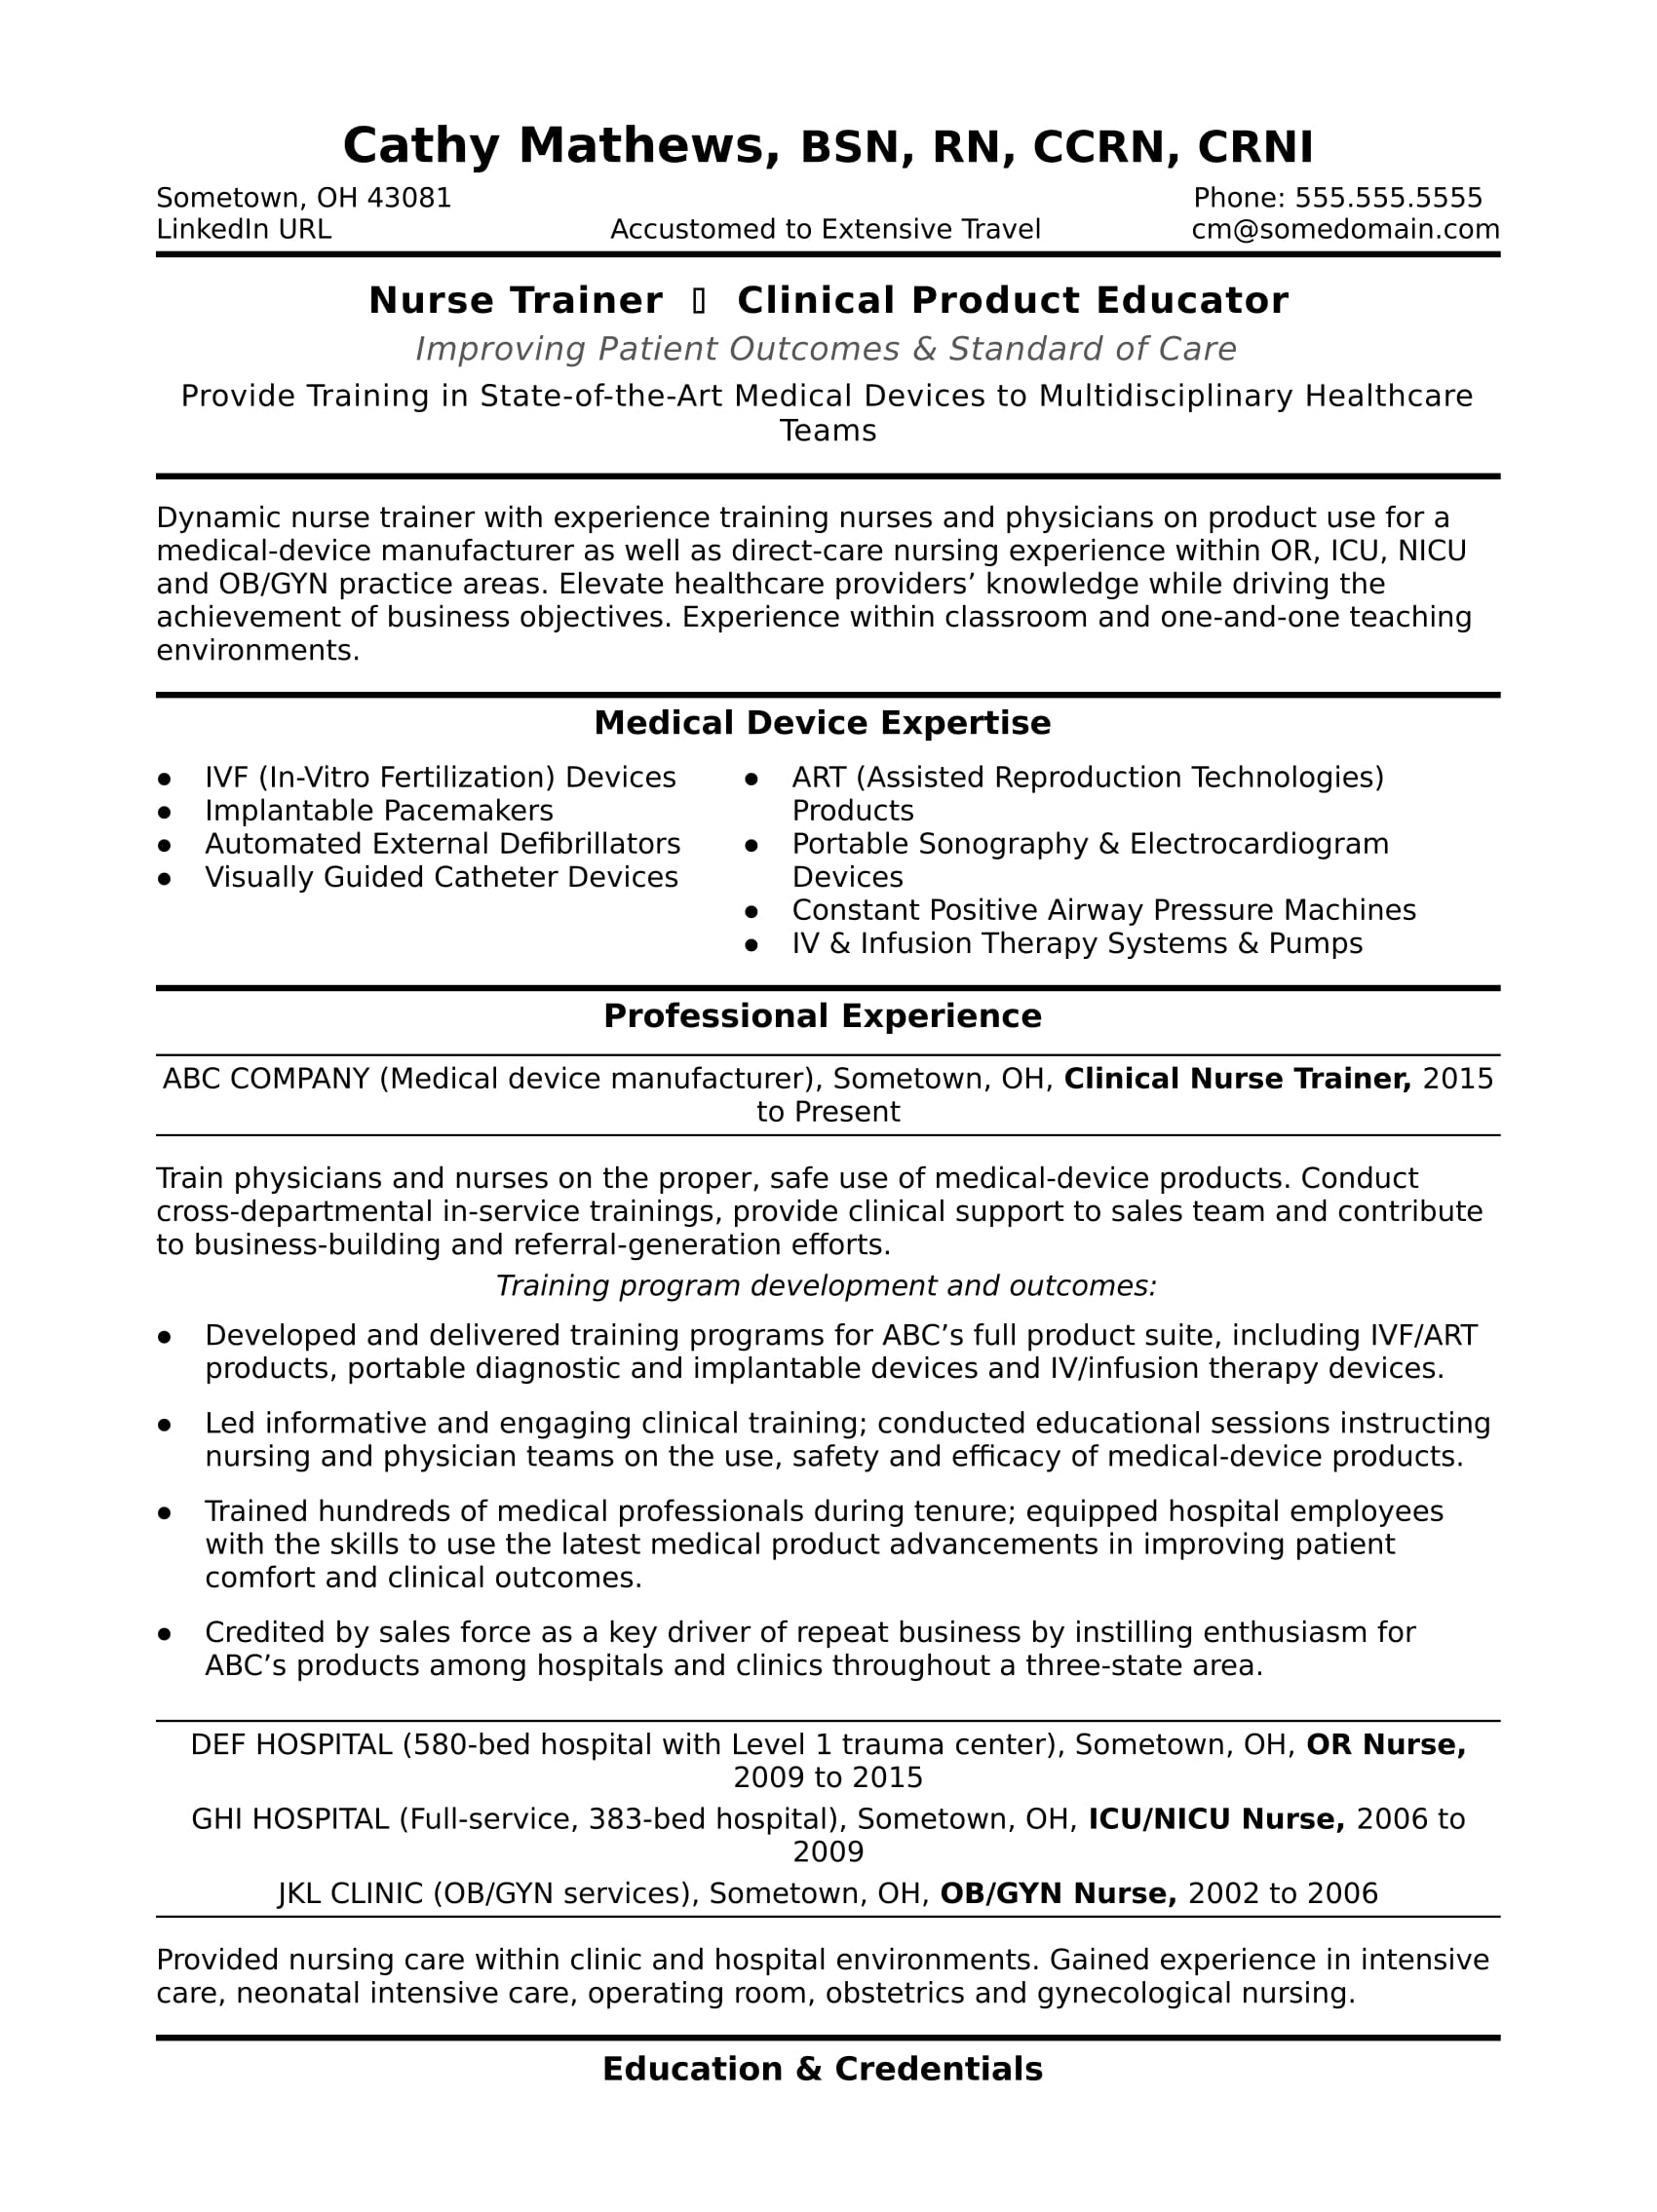 sample resume nursing icu